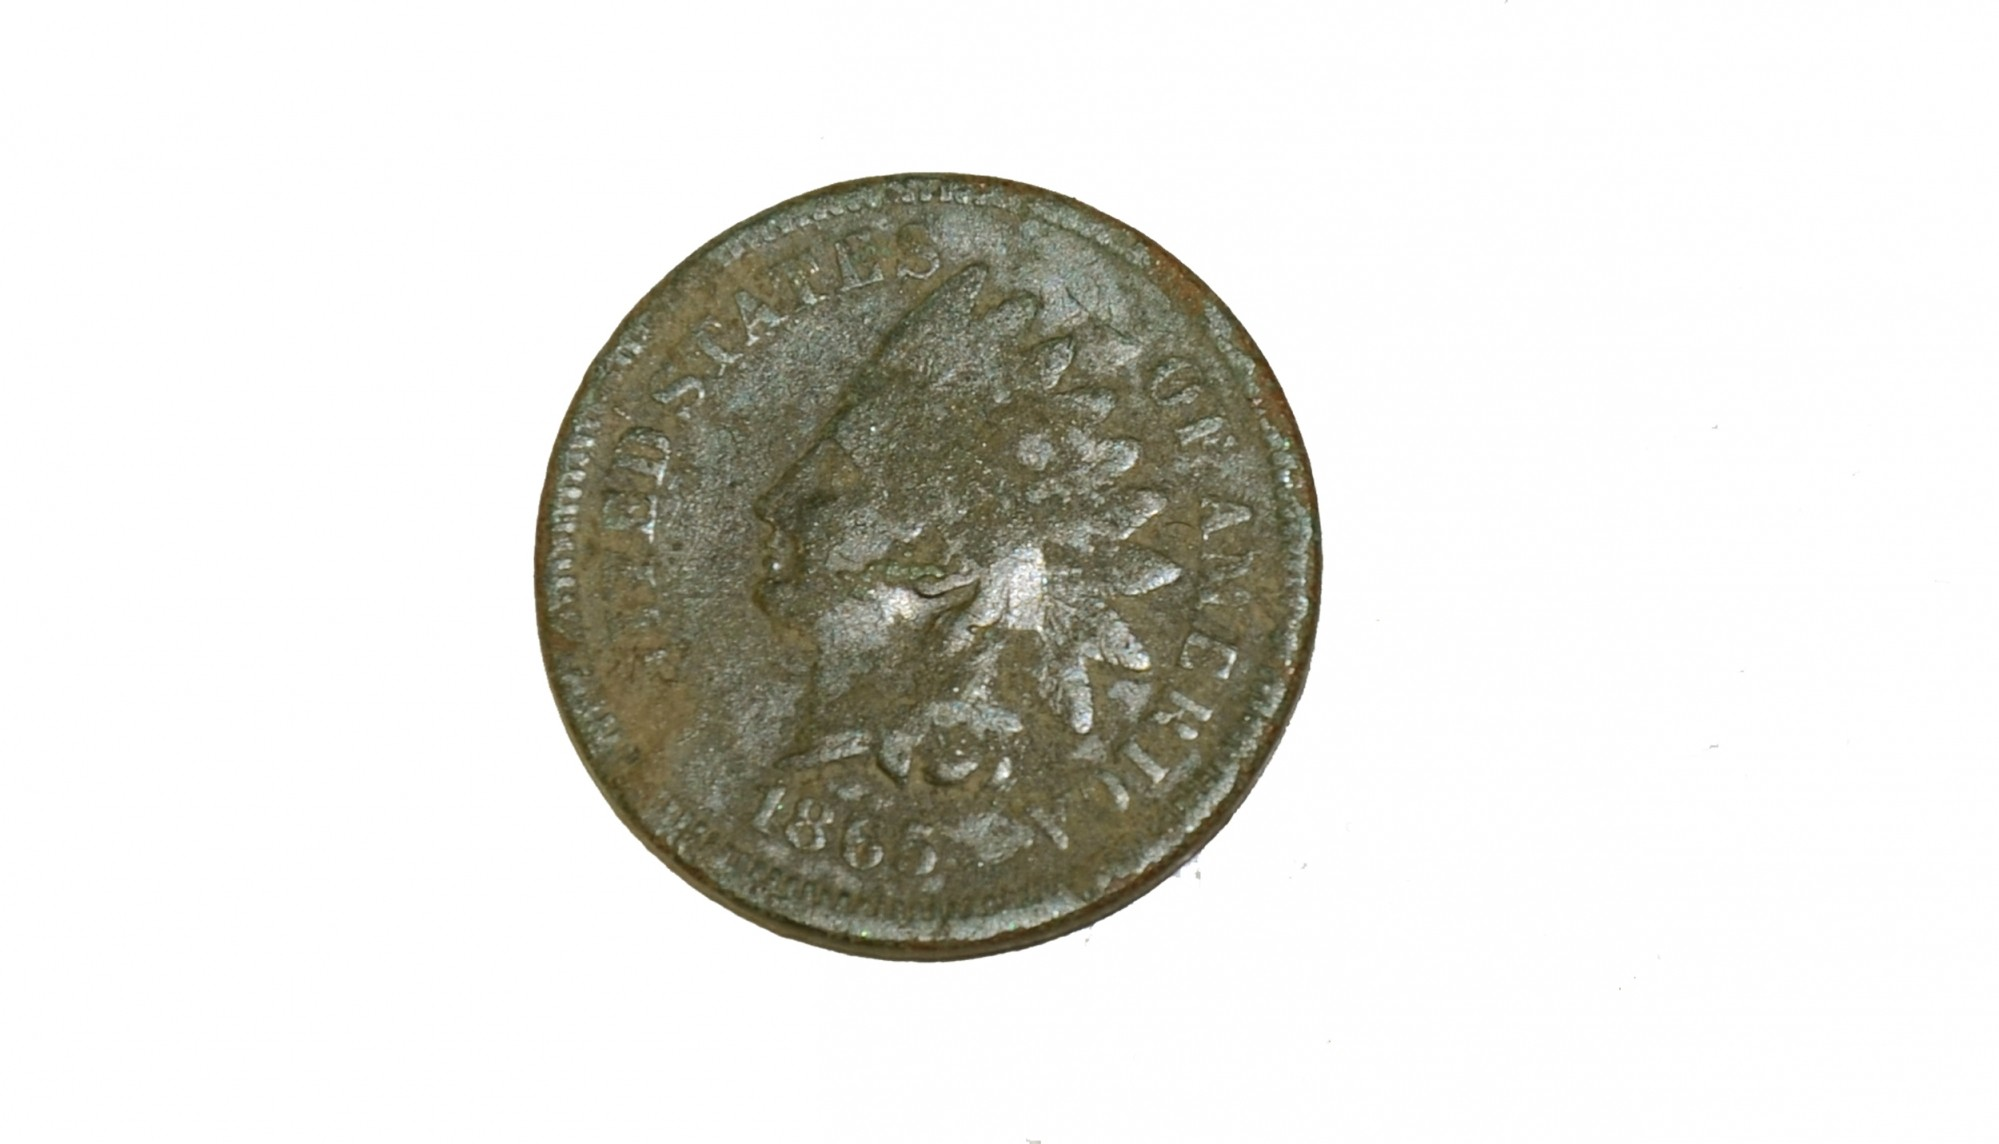 INDIAN HEAD PENNY, DATED 1865, RECOVERED FROM TROSTLE FARM, GETTYSBURG